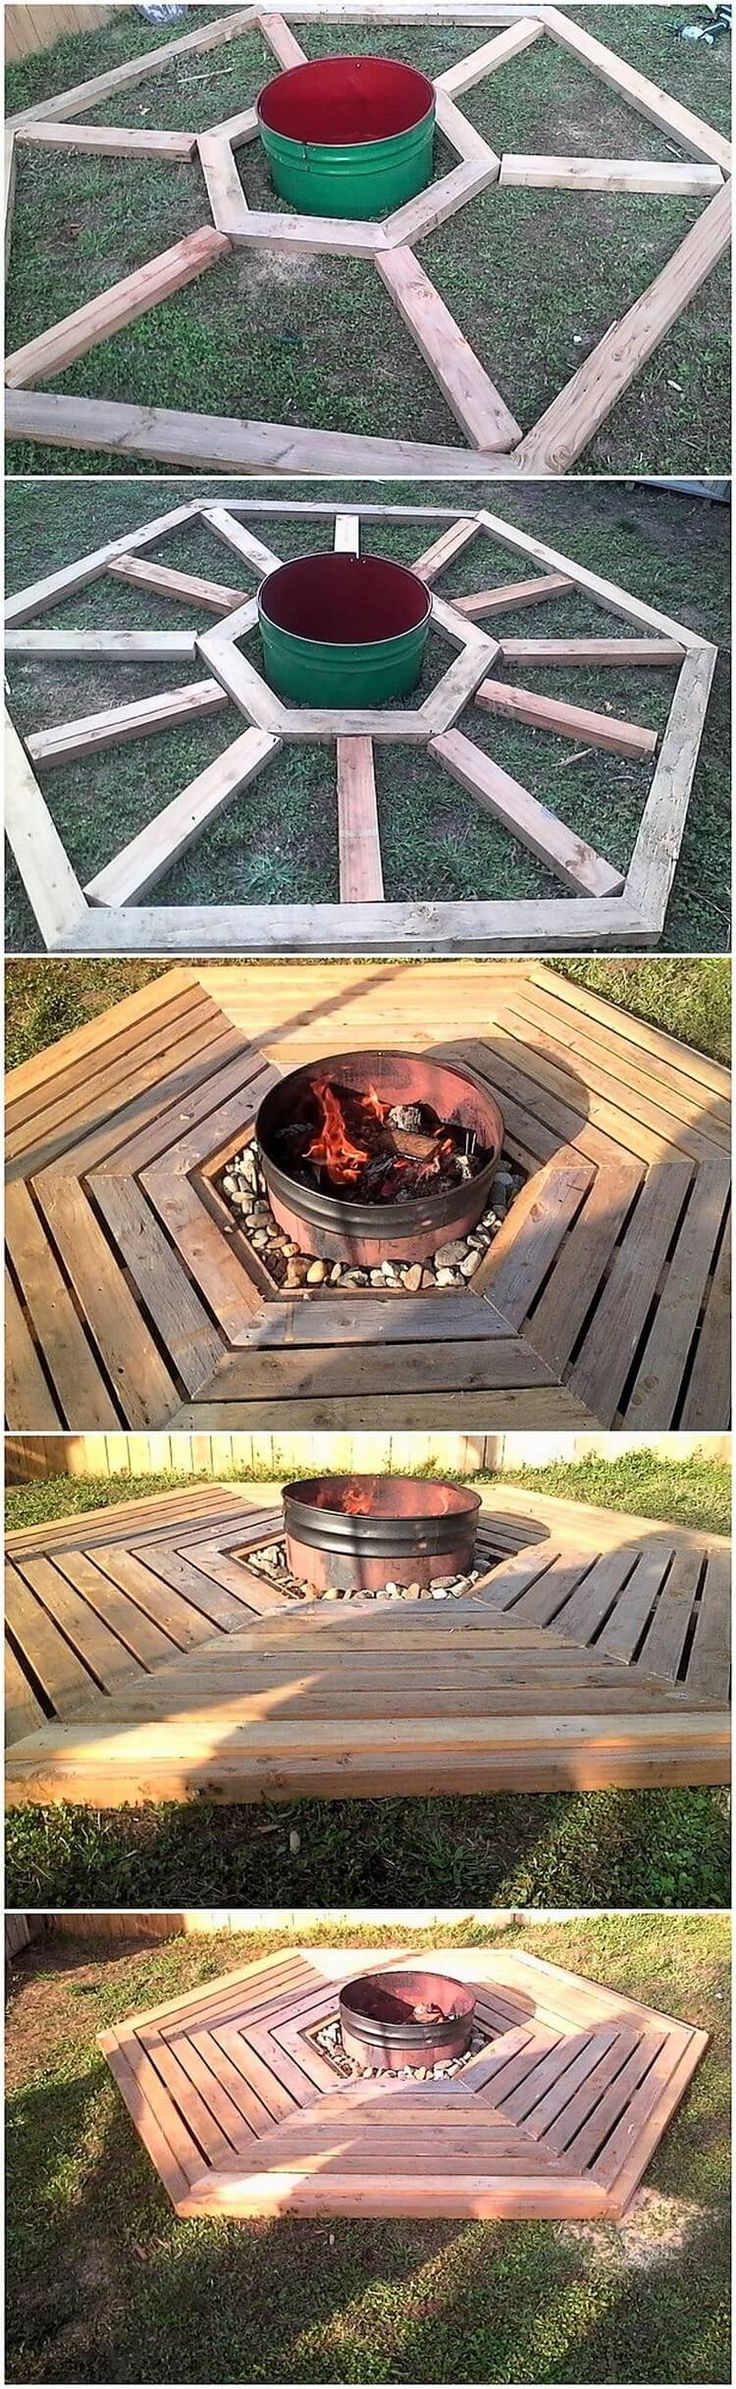 This is such an inspiring designed wood pallet garden creation that would make you to forget blinking your eyes for a second. It is alluring added with the custom work of the wood pallet where the round shaping artwork has been added in an appealing way.